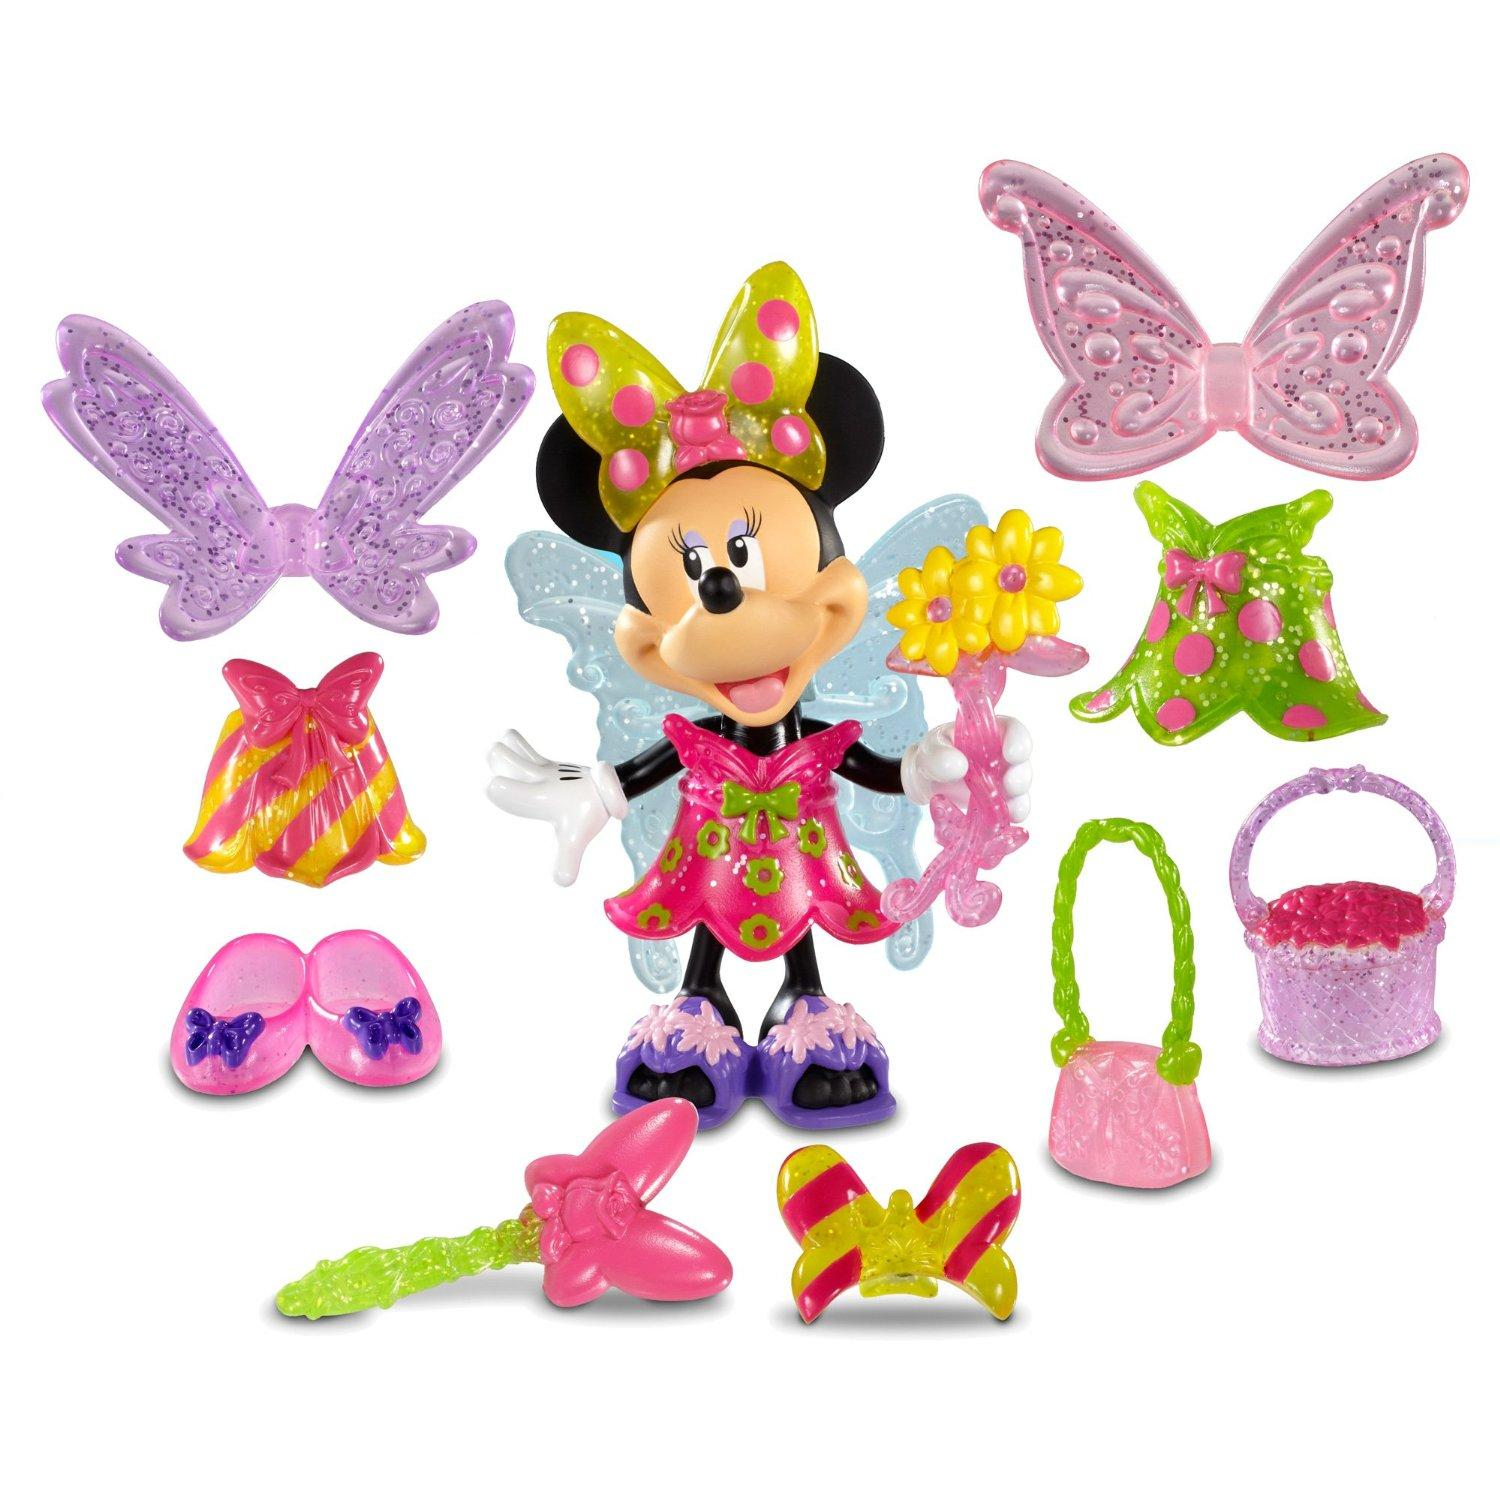 Minnie Mouse Toys : Minnie mouse fairy bow tique figure set toy dress up playset